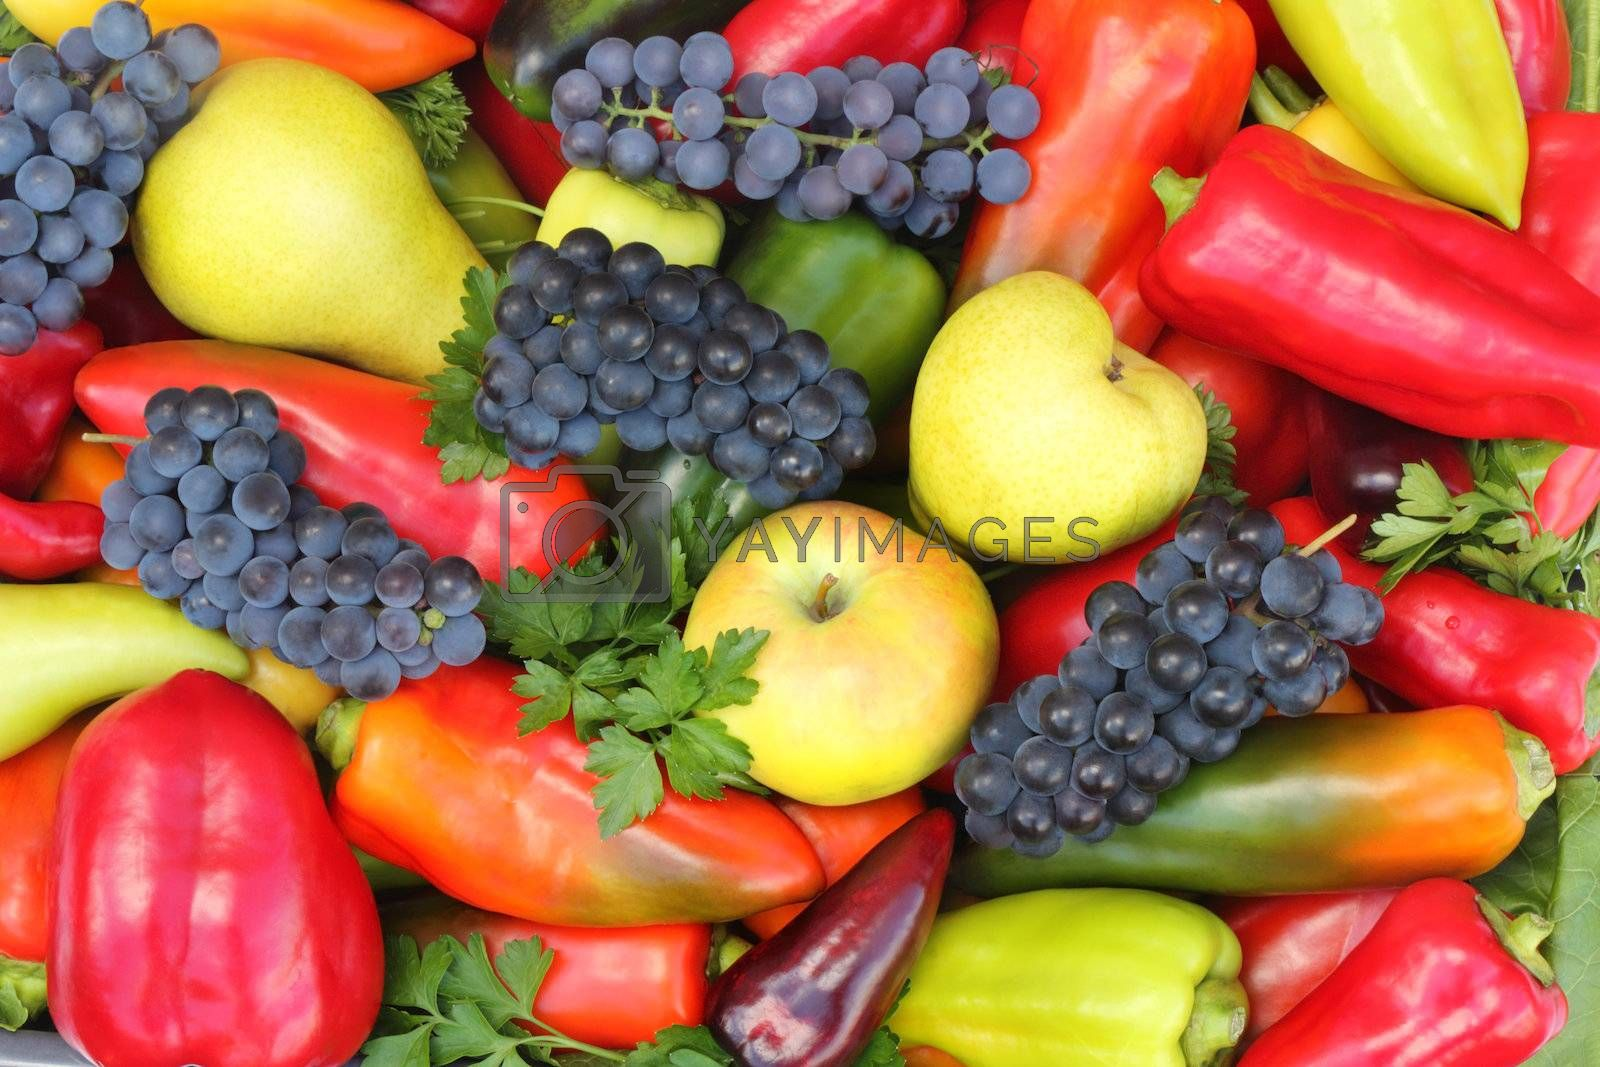 A variety of ripe fruit, apples, pears, grapes, and yellow, red and green peppers.